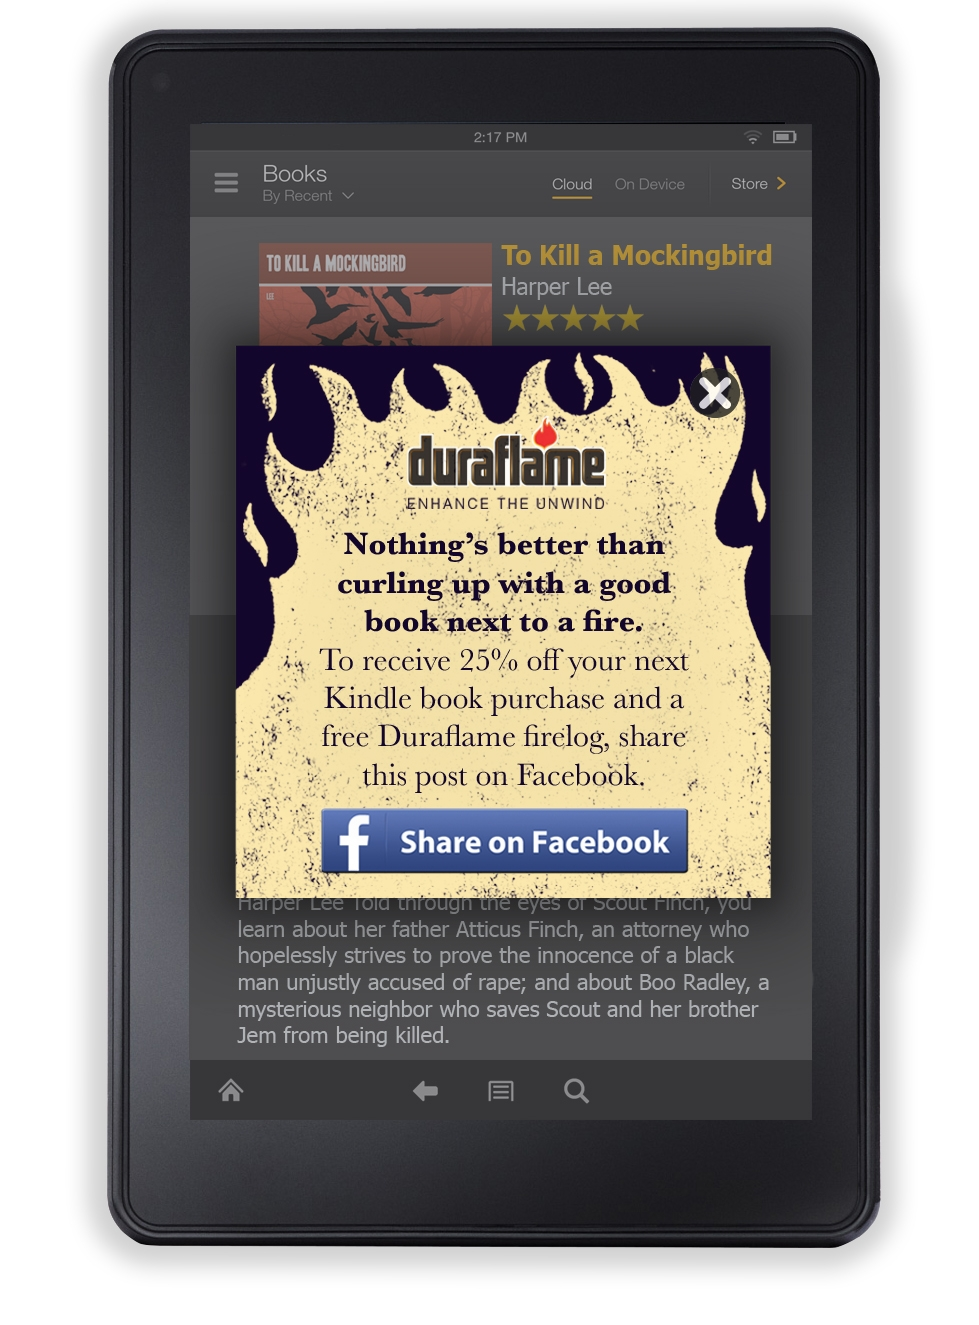 Social Promotion with Amazon Kindle Leading to Facebook Post